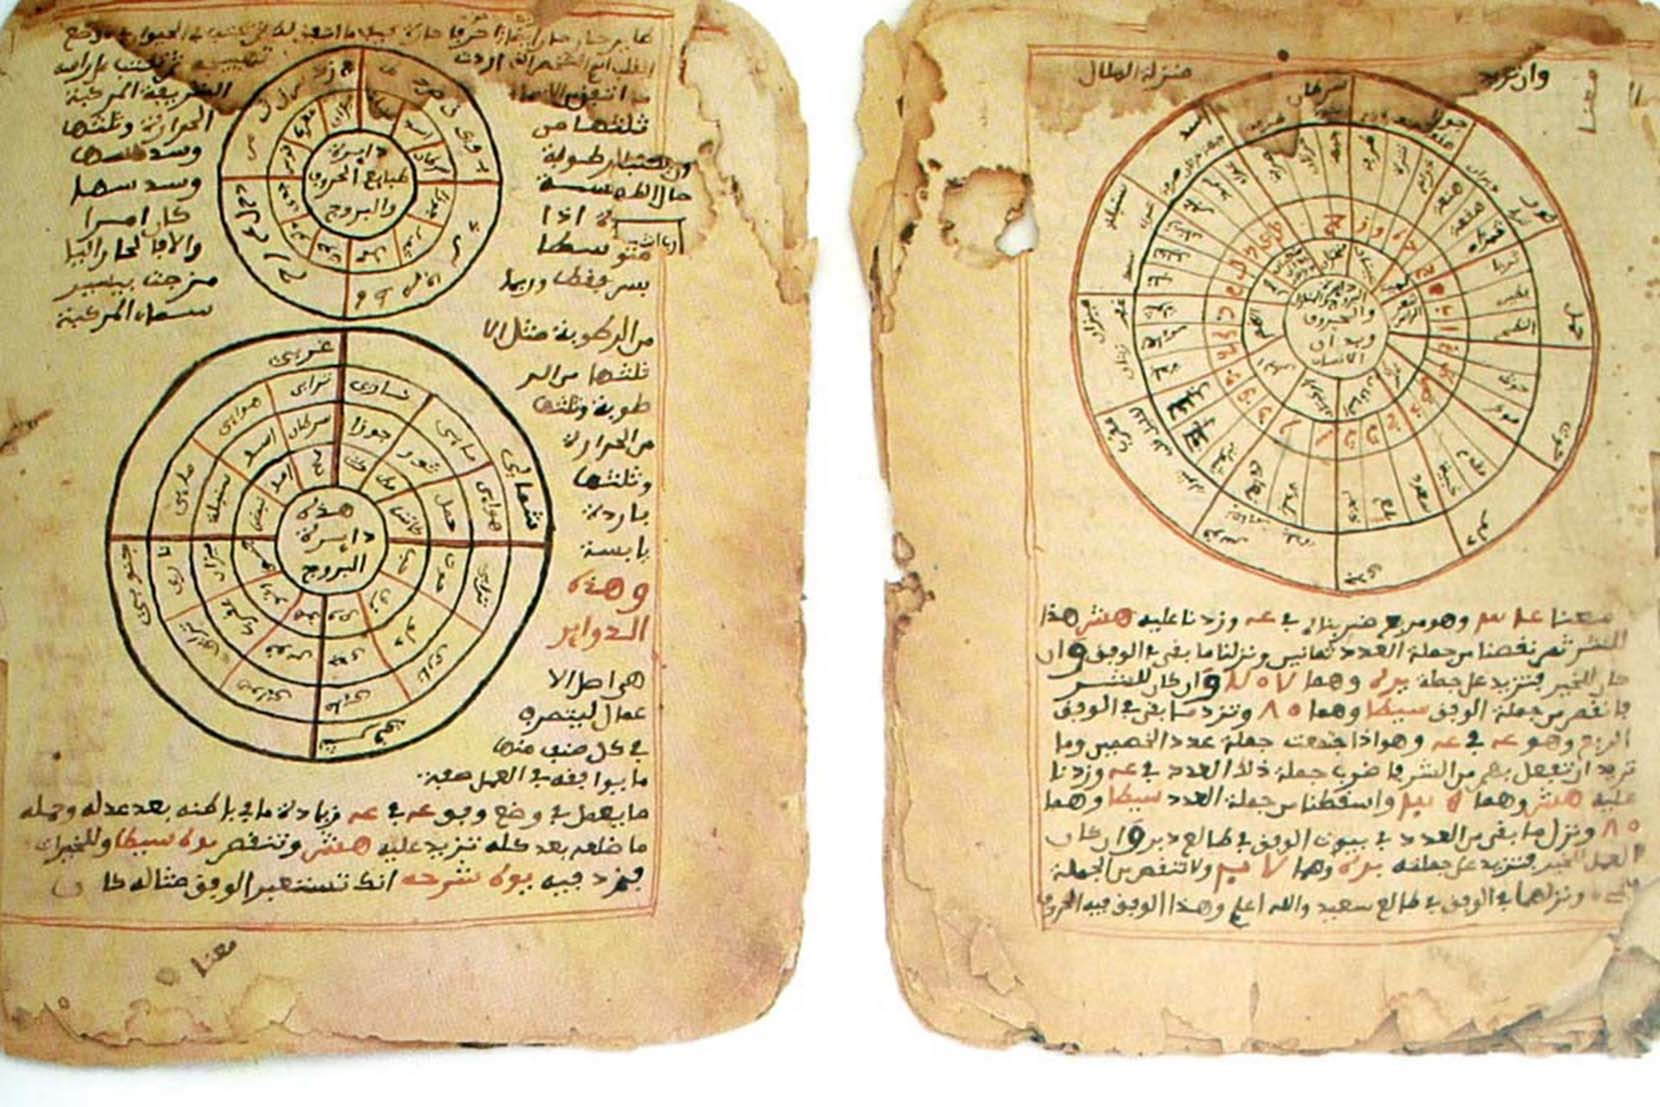 Manuscripts on astronomy and mathematics originating from Timbuktu